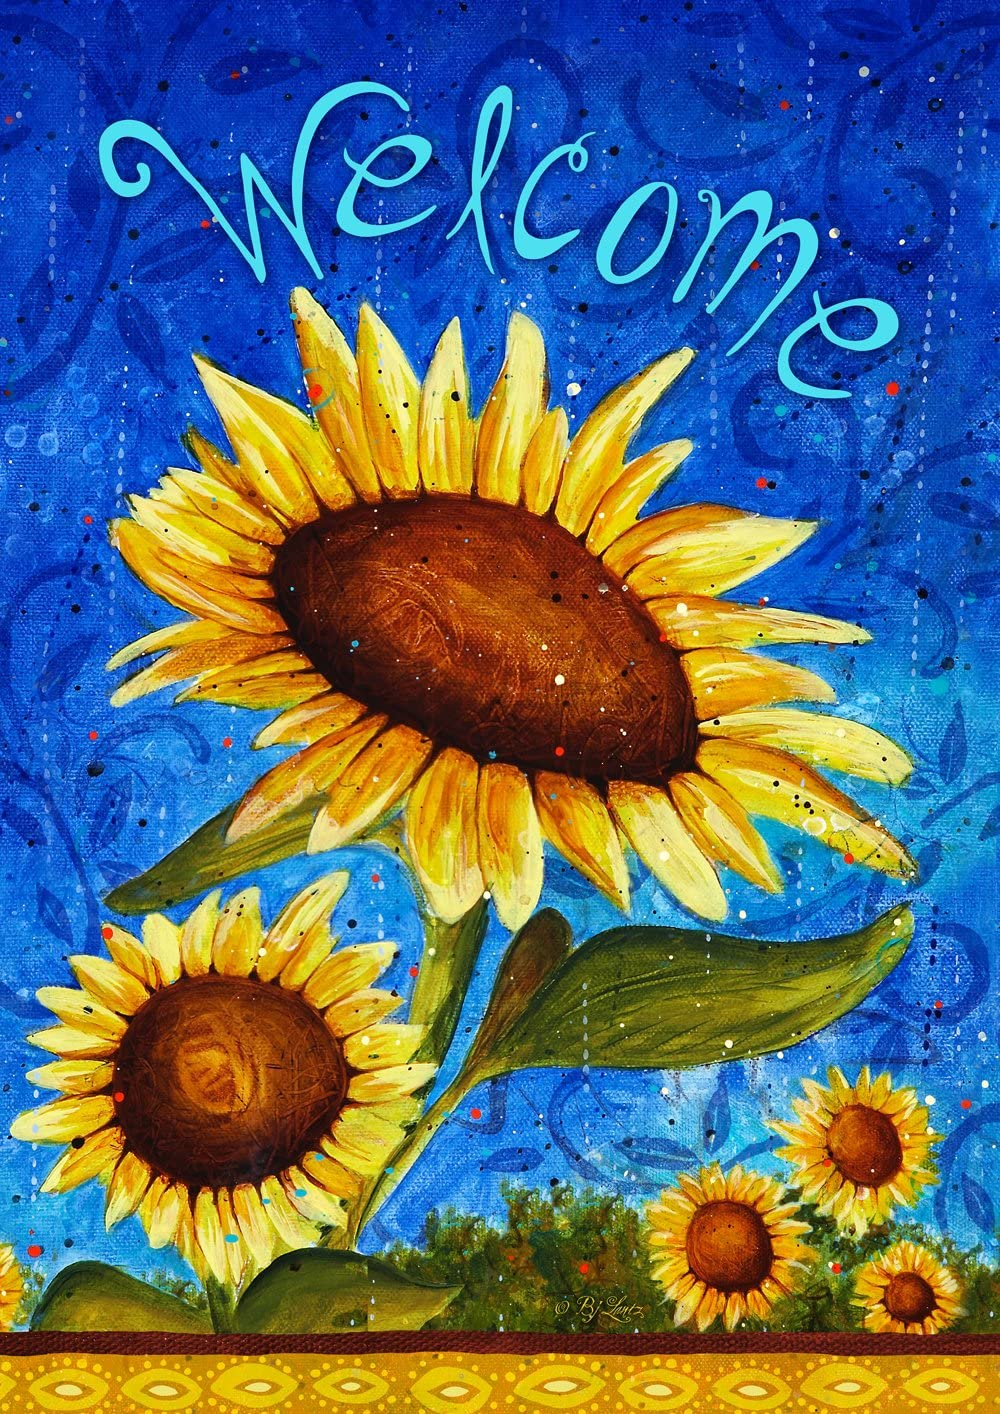 Toland Home Garden Sweet Sunflowers 28 x 40 Inch Decorative Summer Welcome Flower Double Sided House Flag